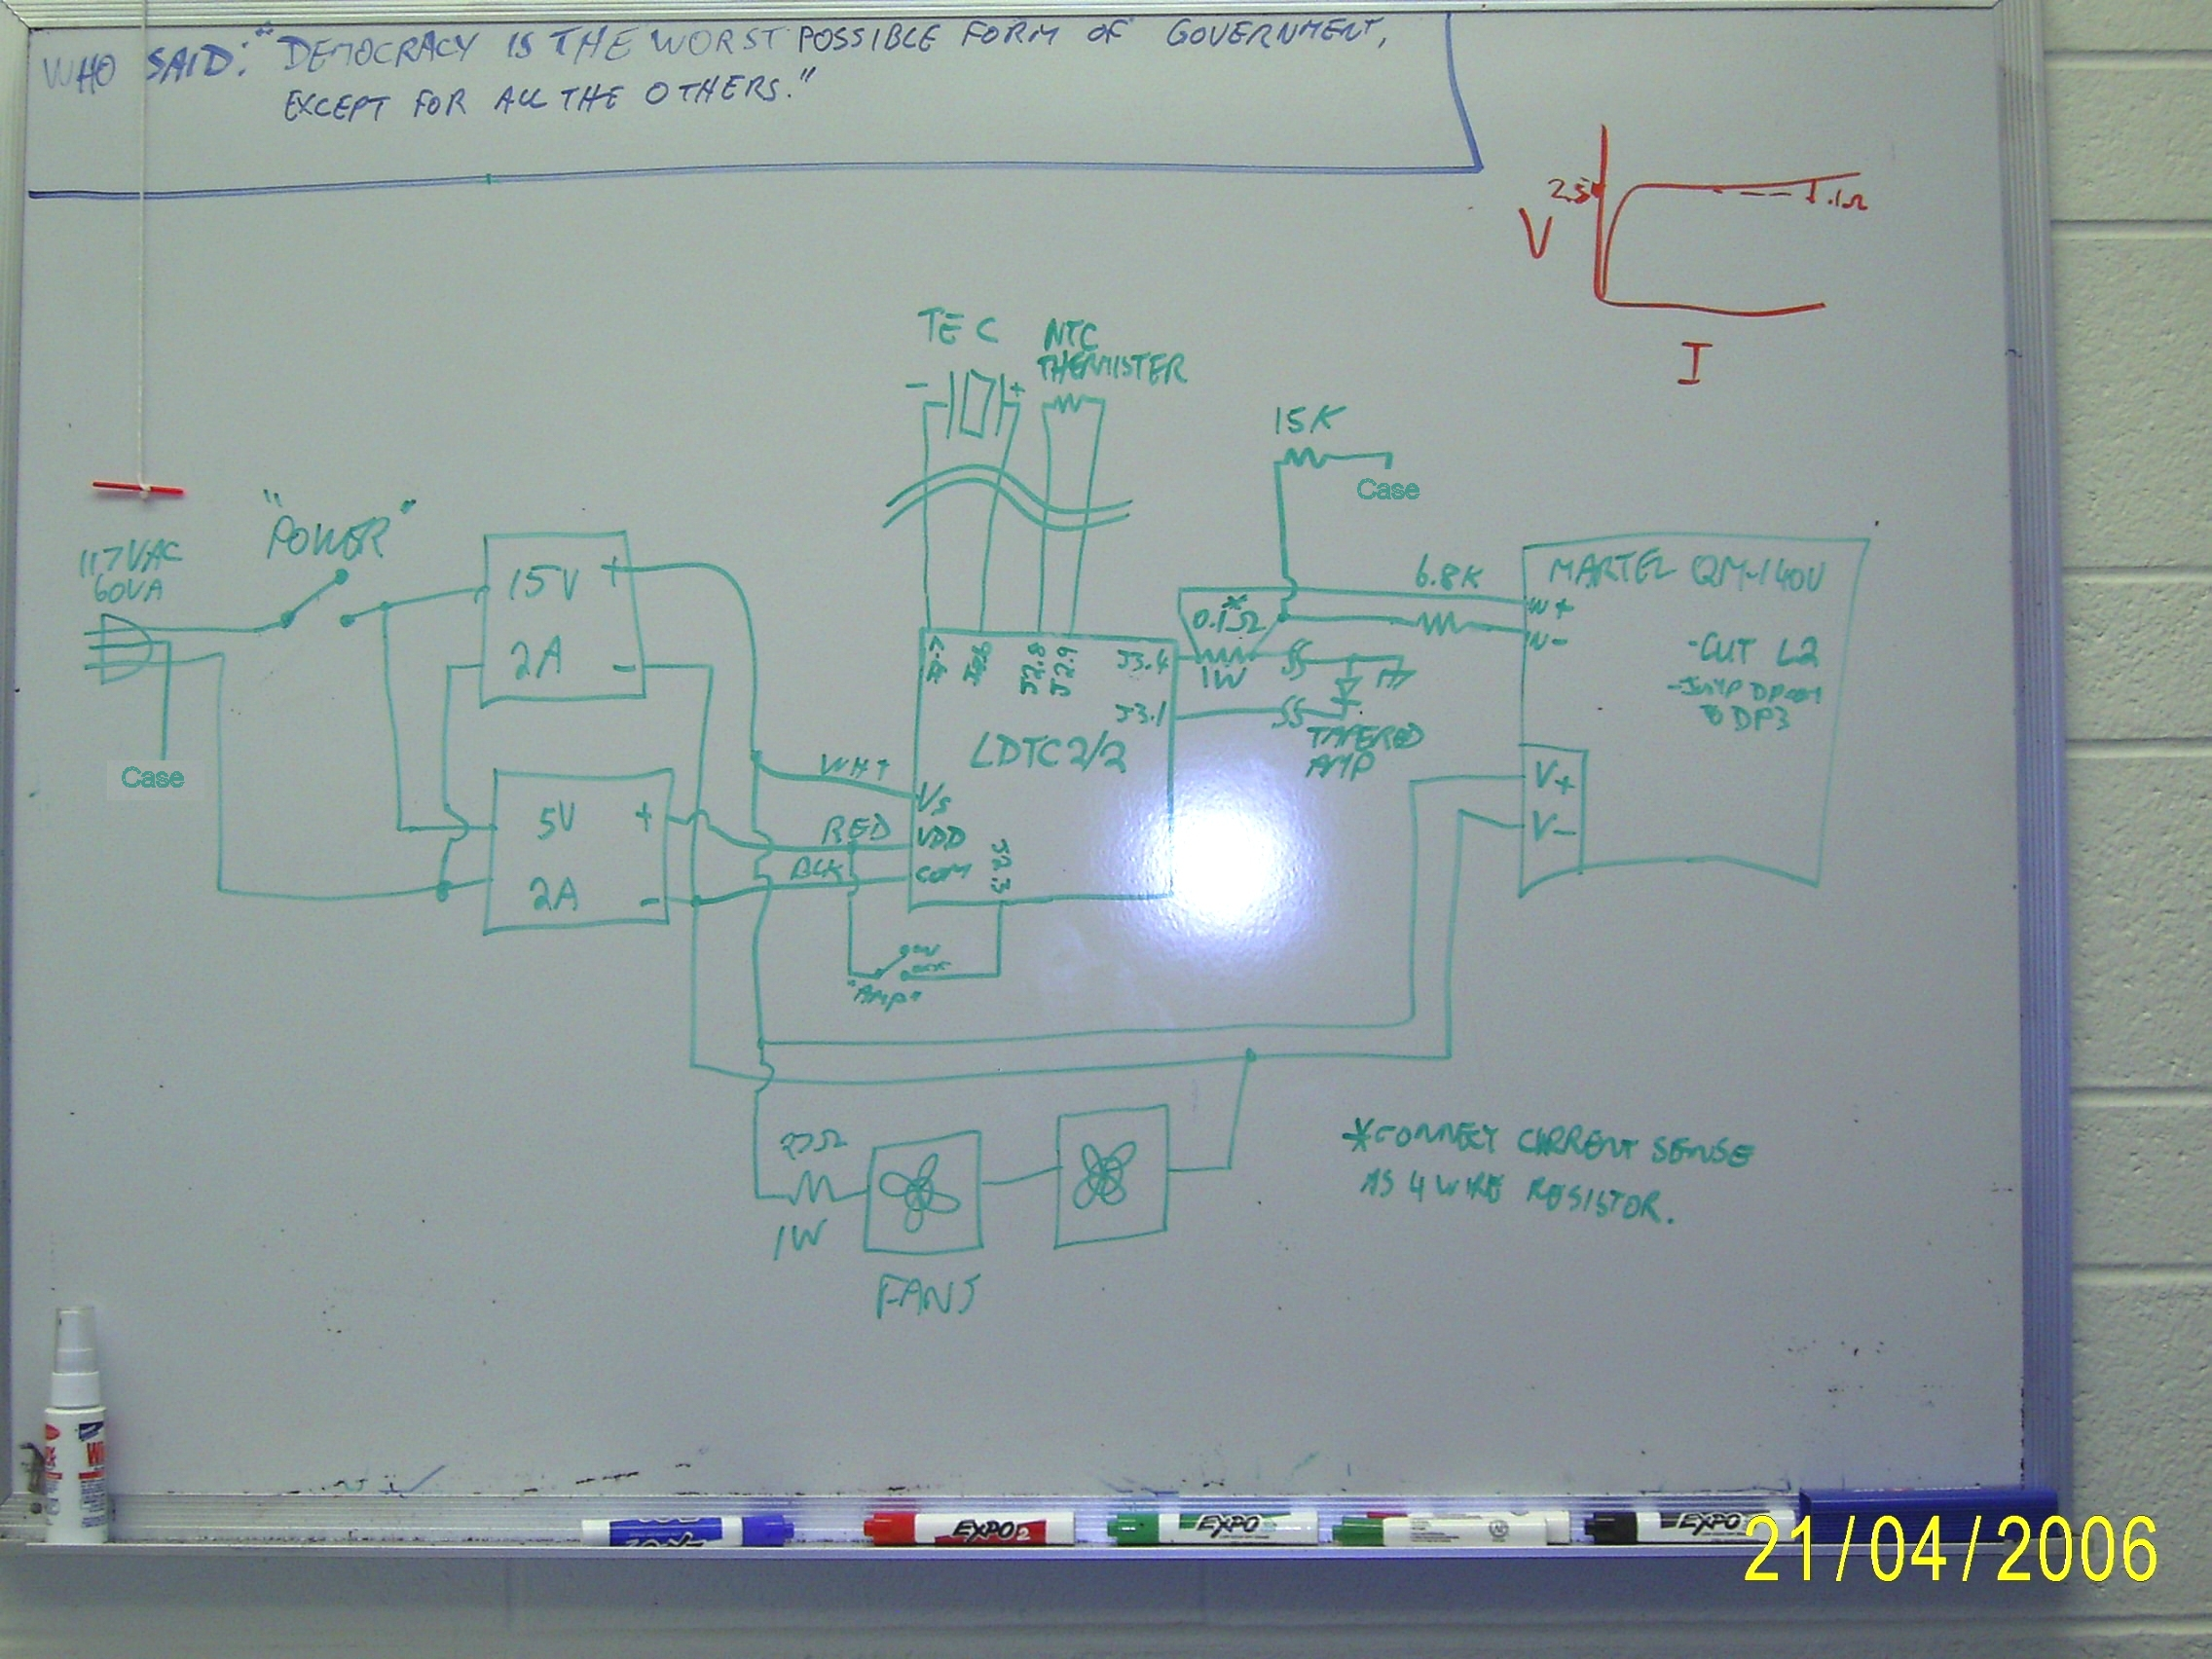 Tapered Amplifier Qm Series Wiring Diagrams Use The 2006 Diagram